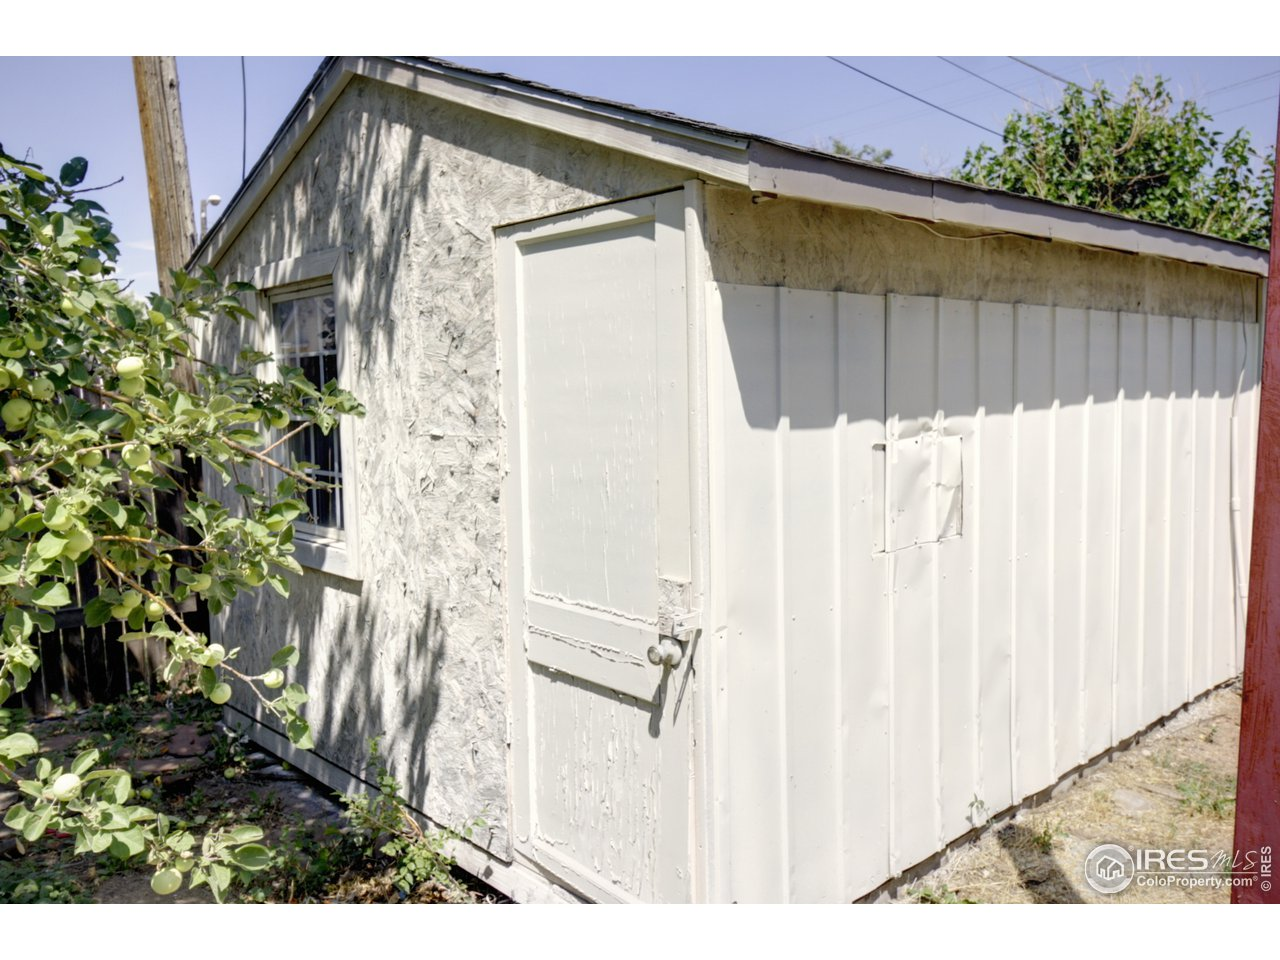 Shed #2